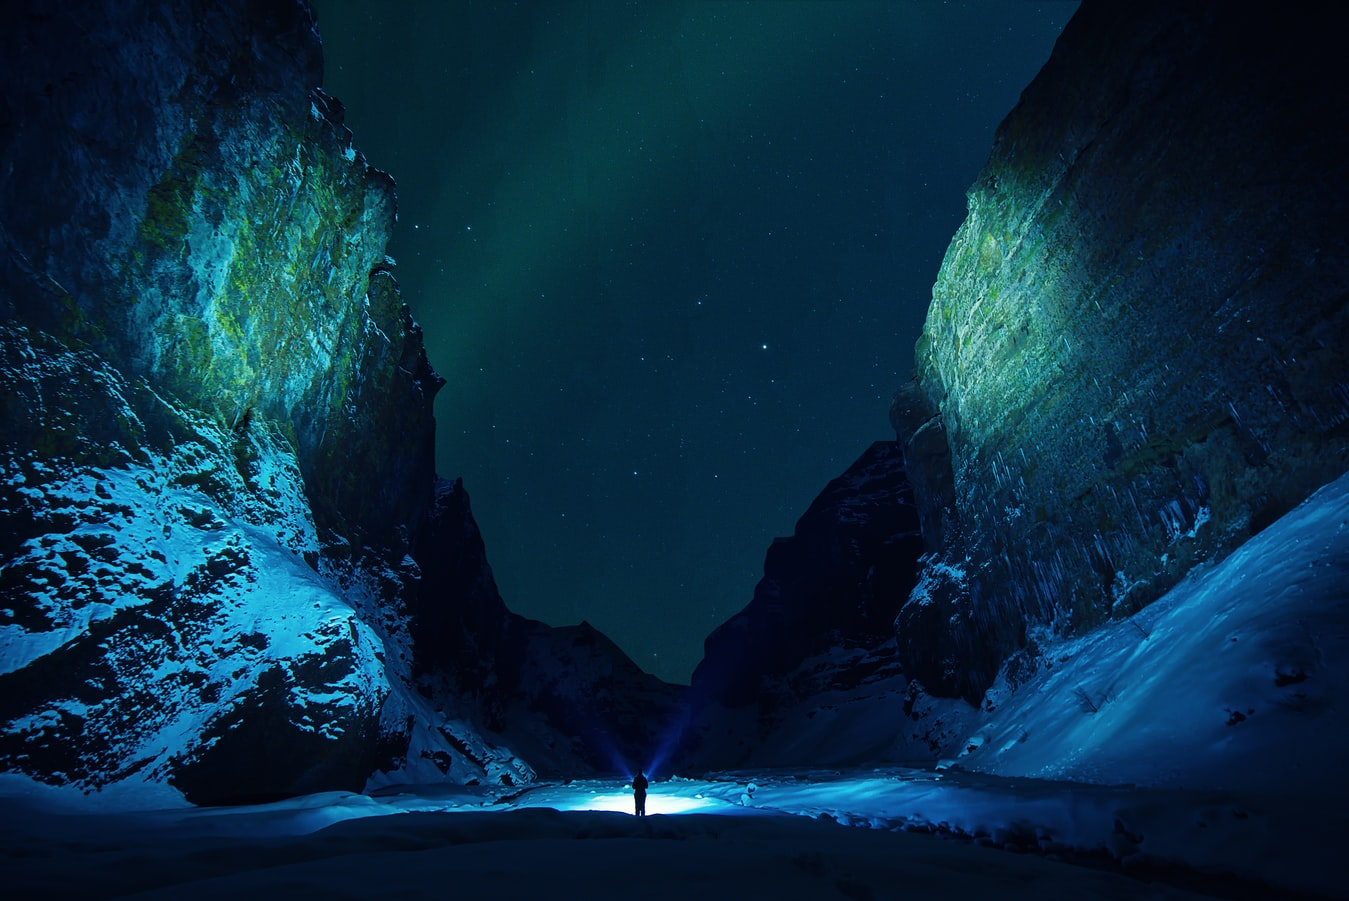 northern lights over Stakkholtsgja canyon during winter, game of thrones location in Iceland